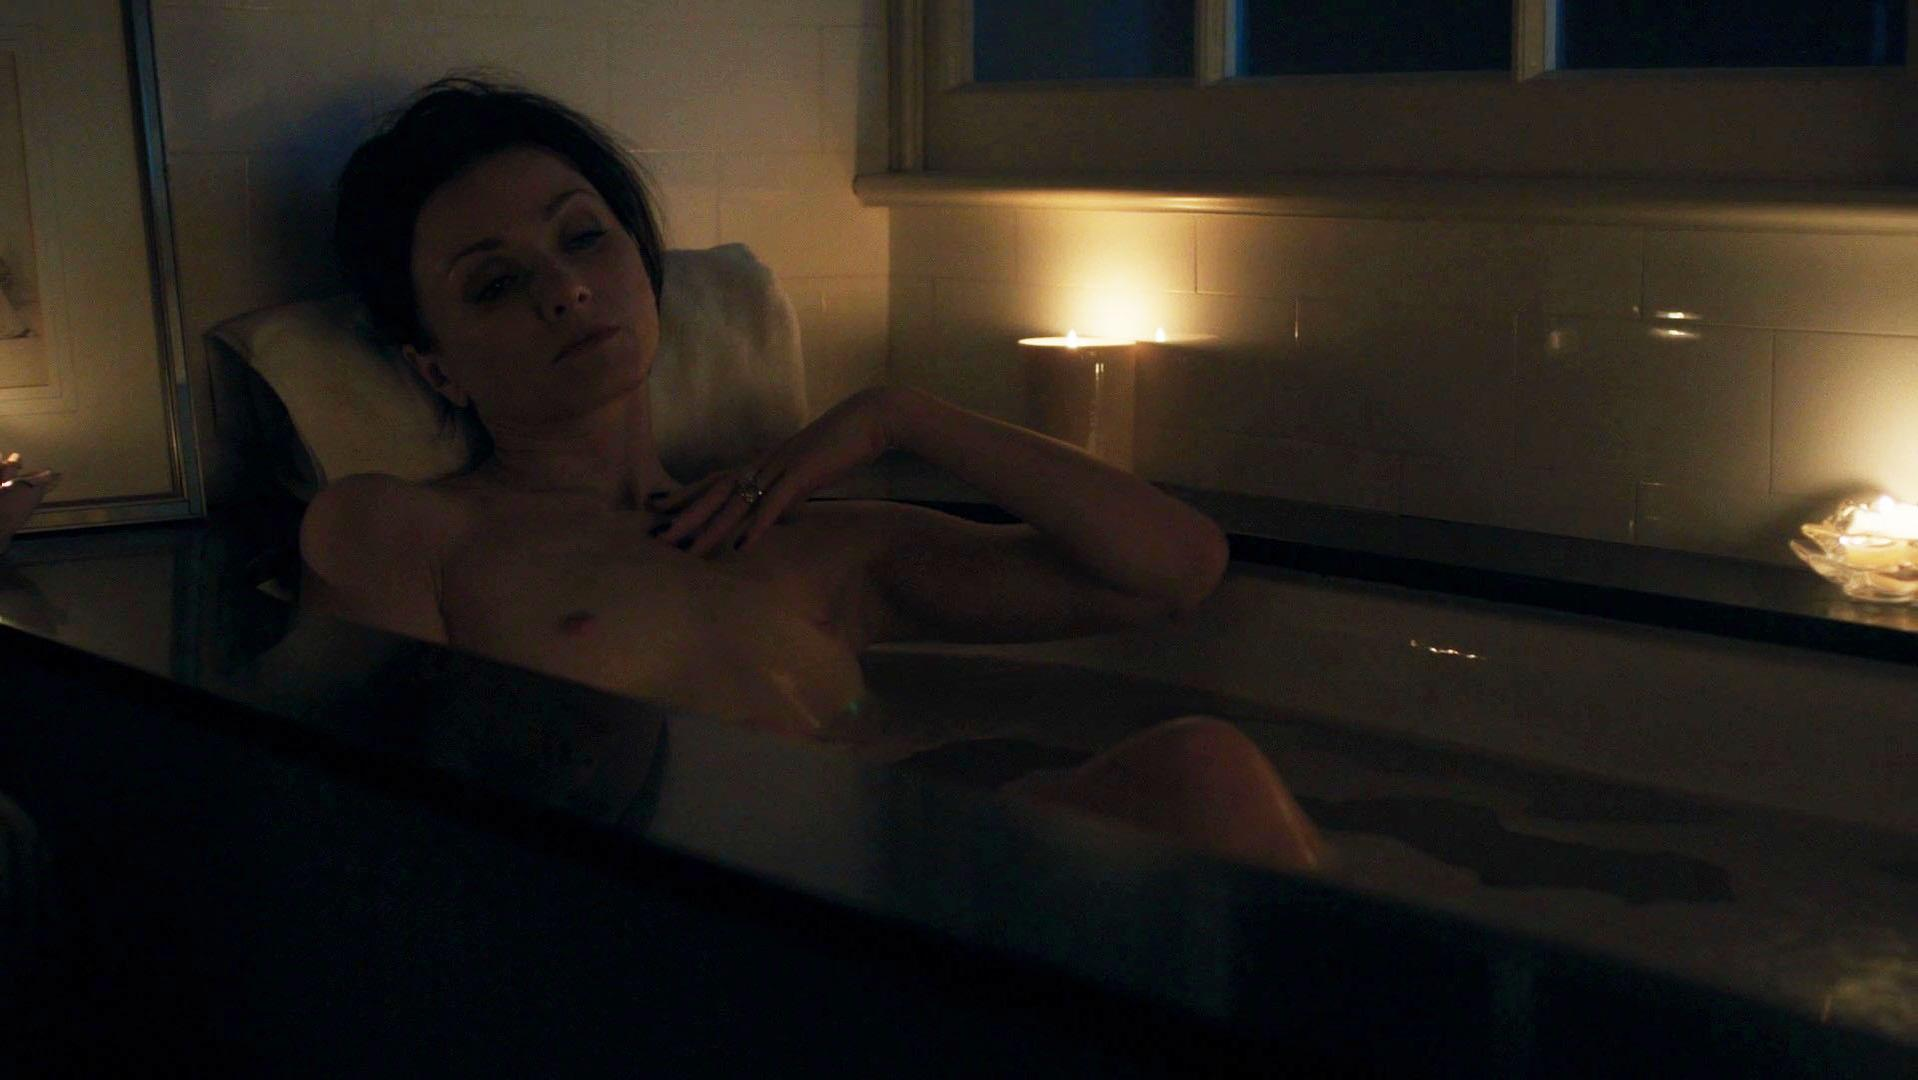 Irina Dvorovenko nude - Flesh and Bone s01e05 (2015)